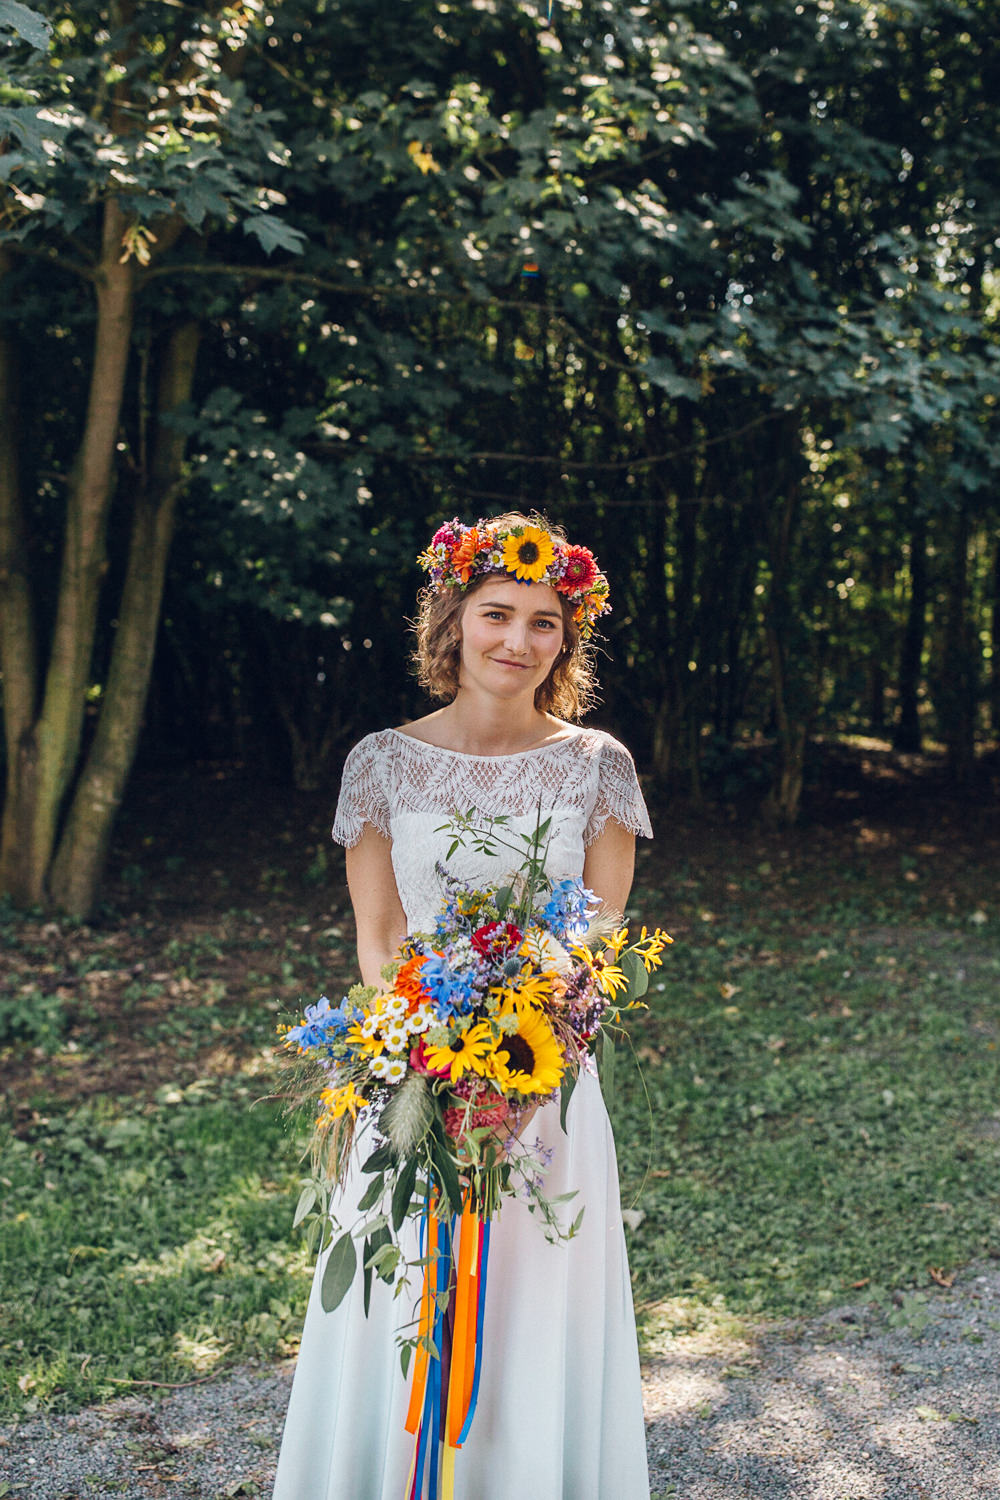 Bride Bridal Flowers Colourful Bouquet Flower Crown Bright Camp Festival Wedding Chloe Lee Photography